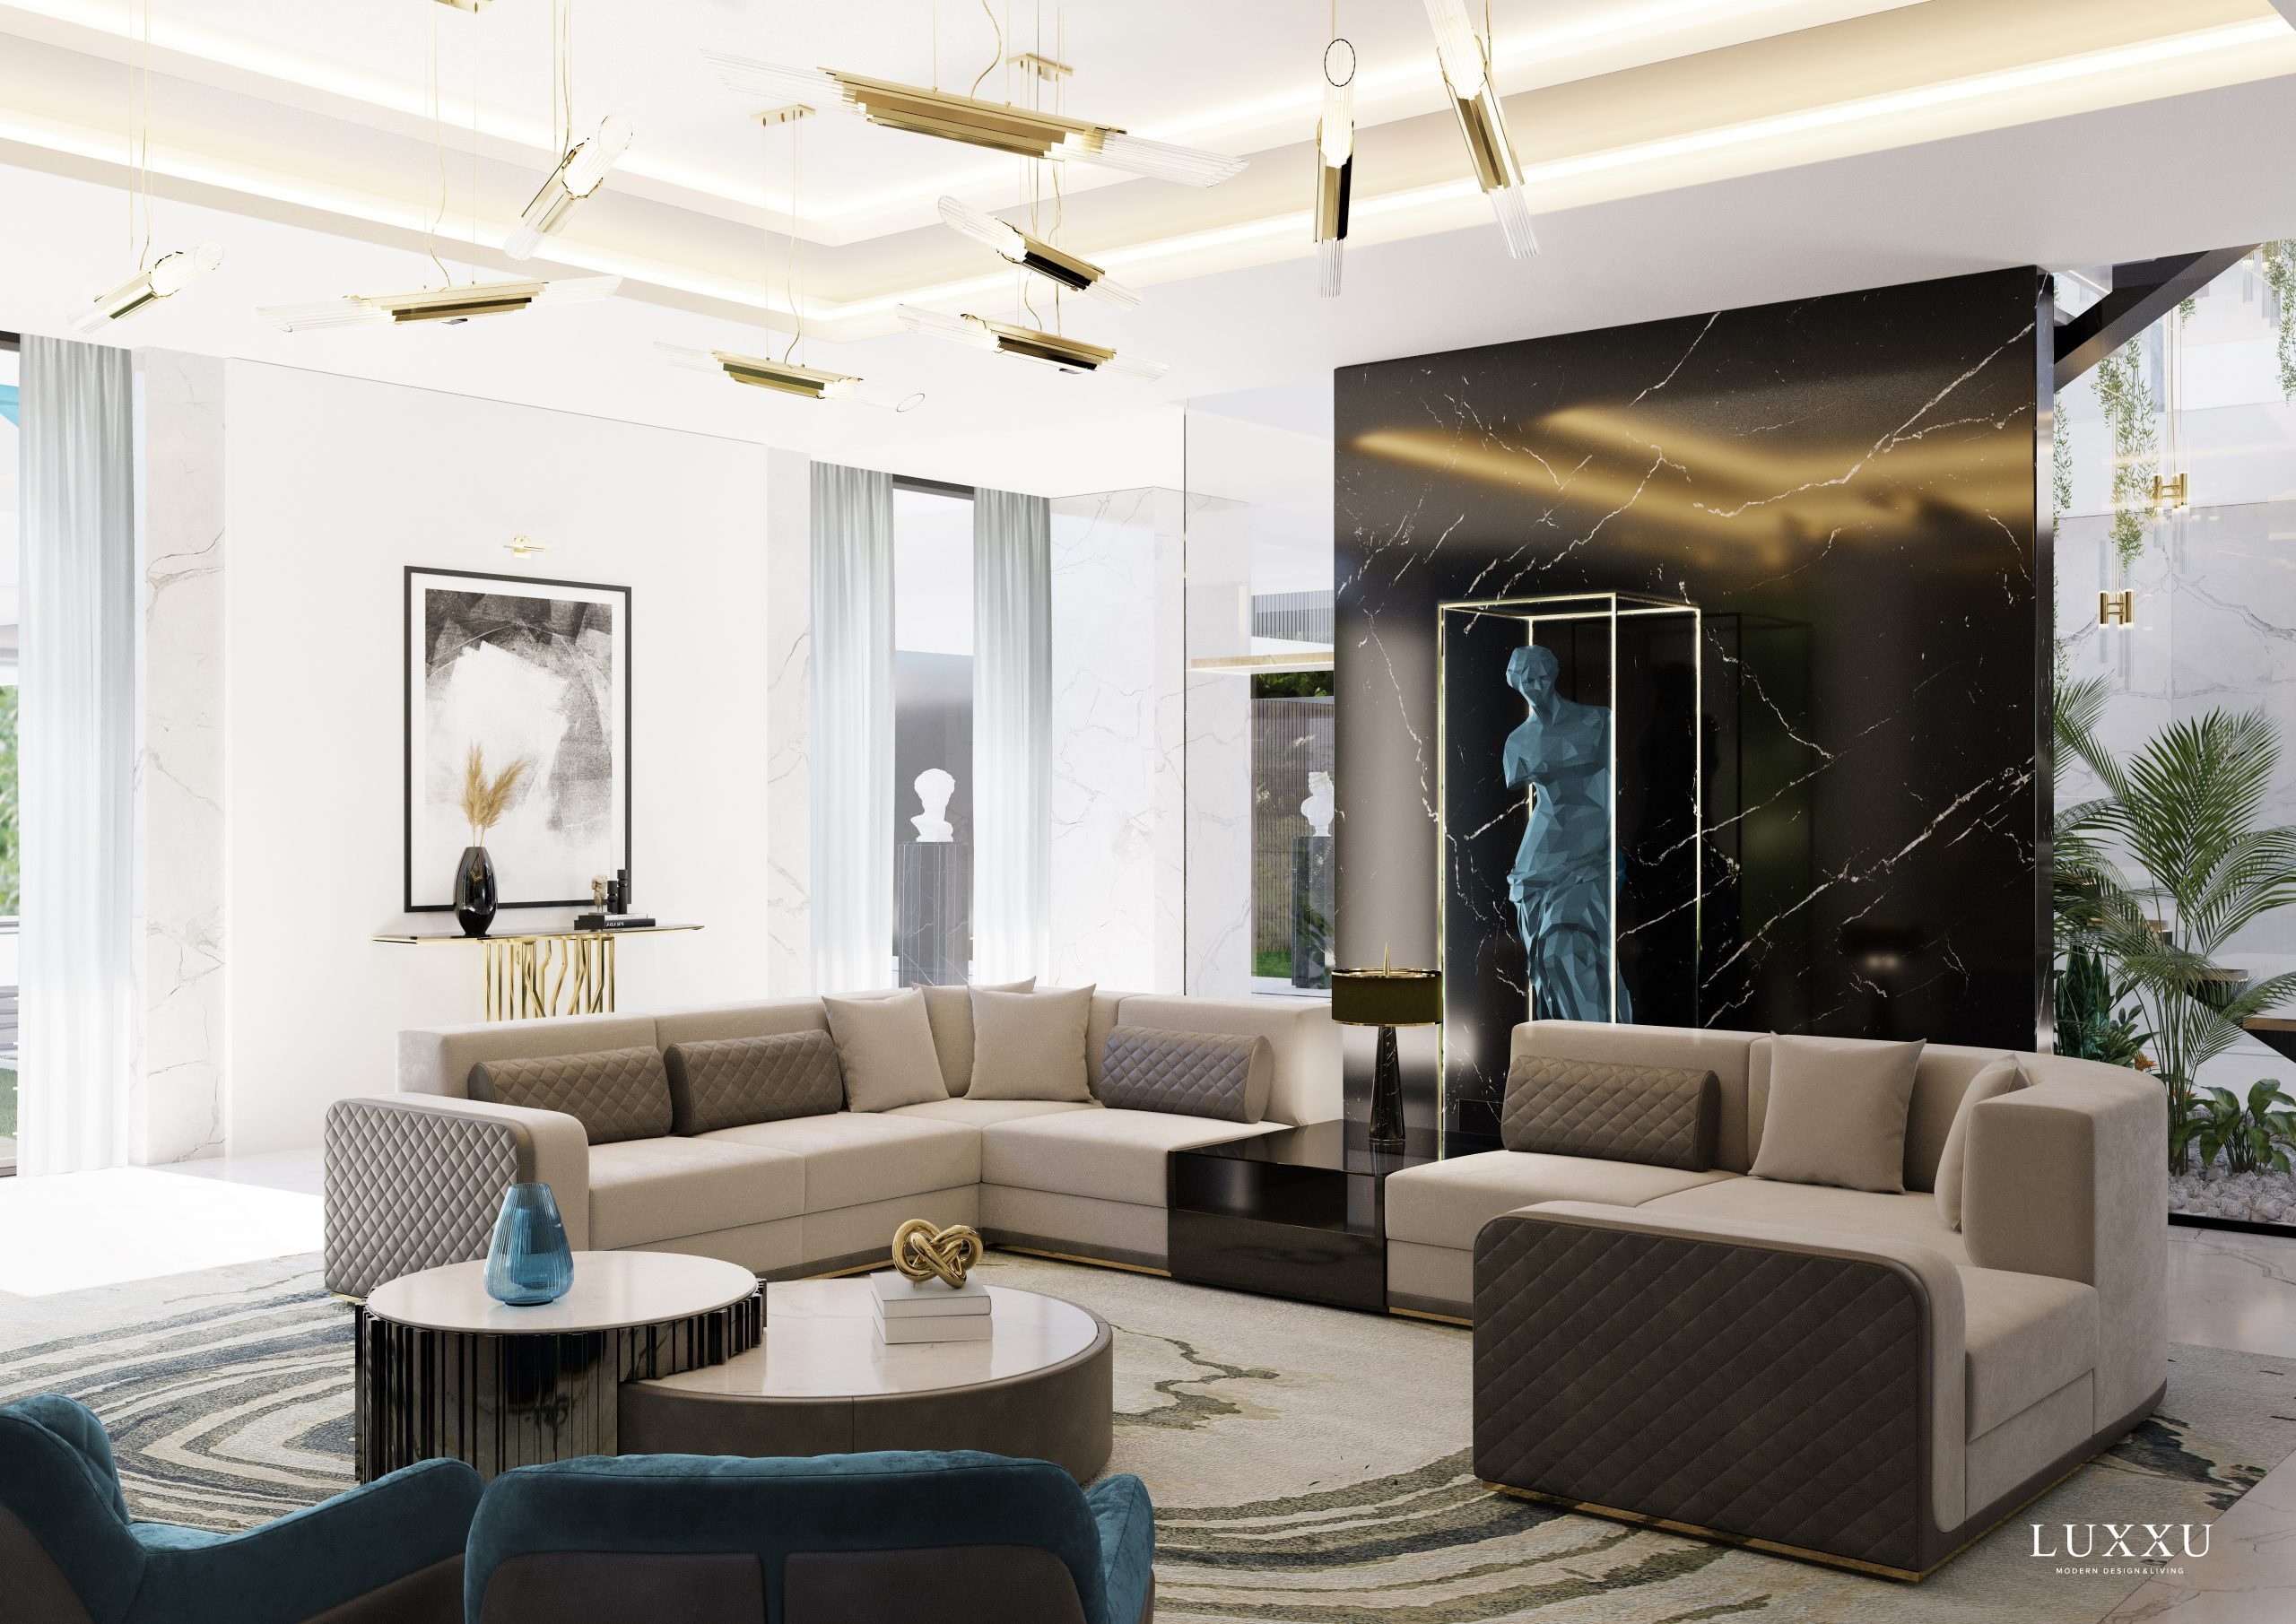 Entertainment Room Design - A Game Of Luxury And Sophistication entertainment room design Entertainment Room Design – A Game Of Luxury And Sophistication 00023